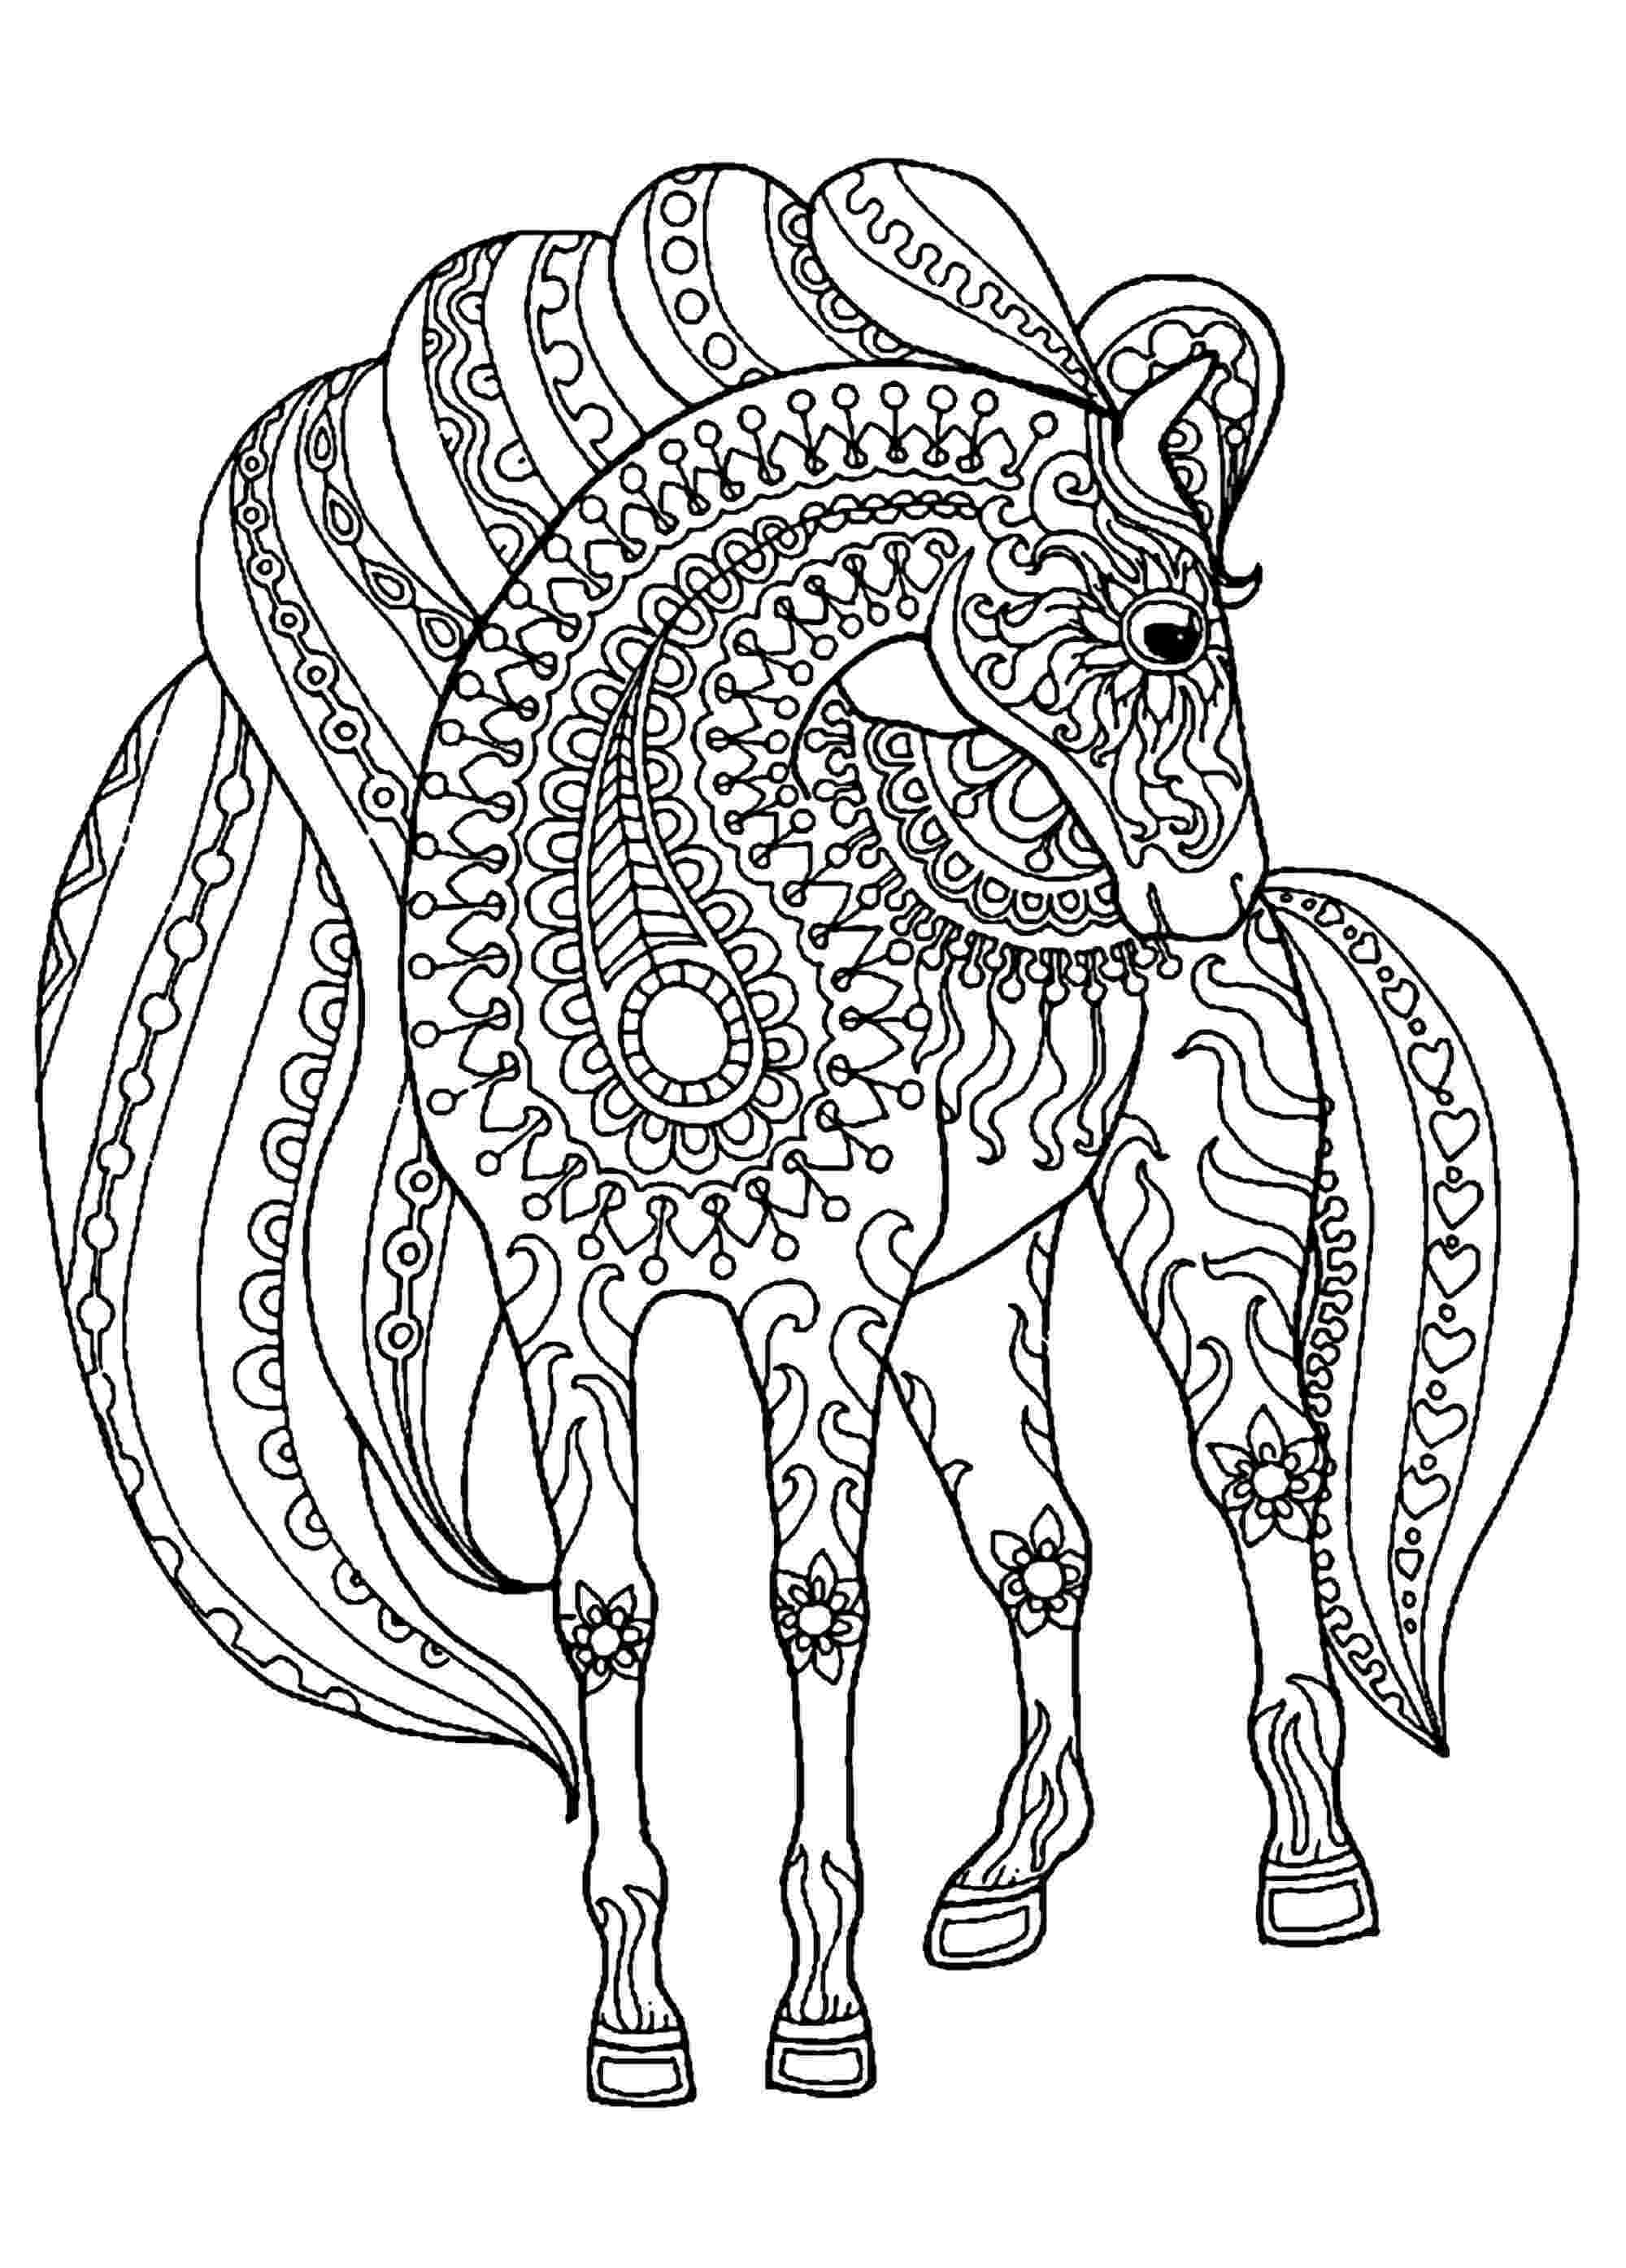 coloring pics of horses palomino horse coloring pages download and print for free coloring pics horses of